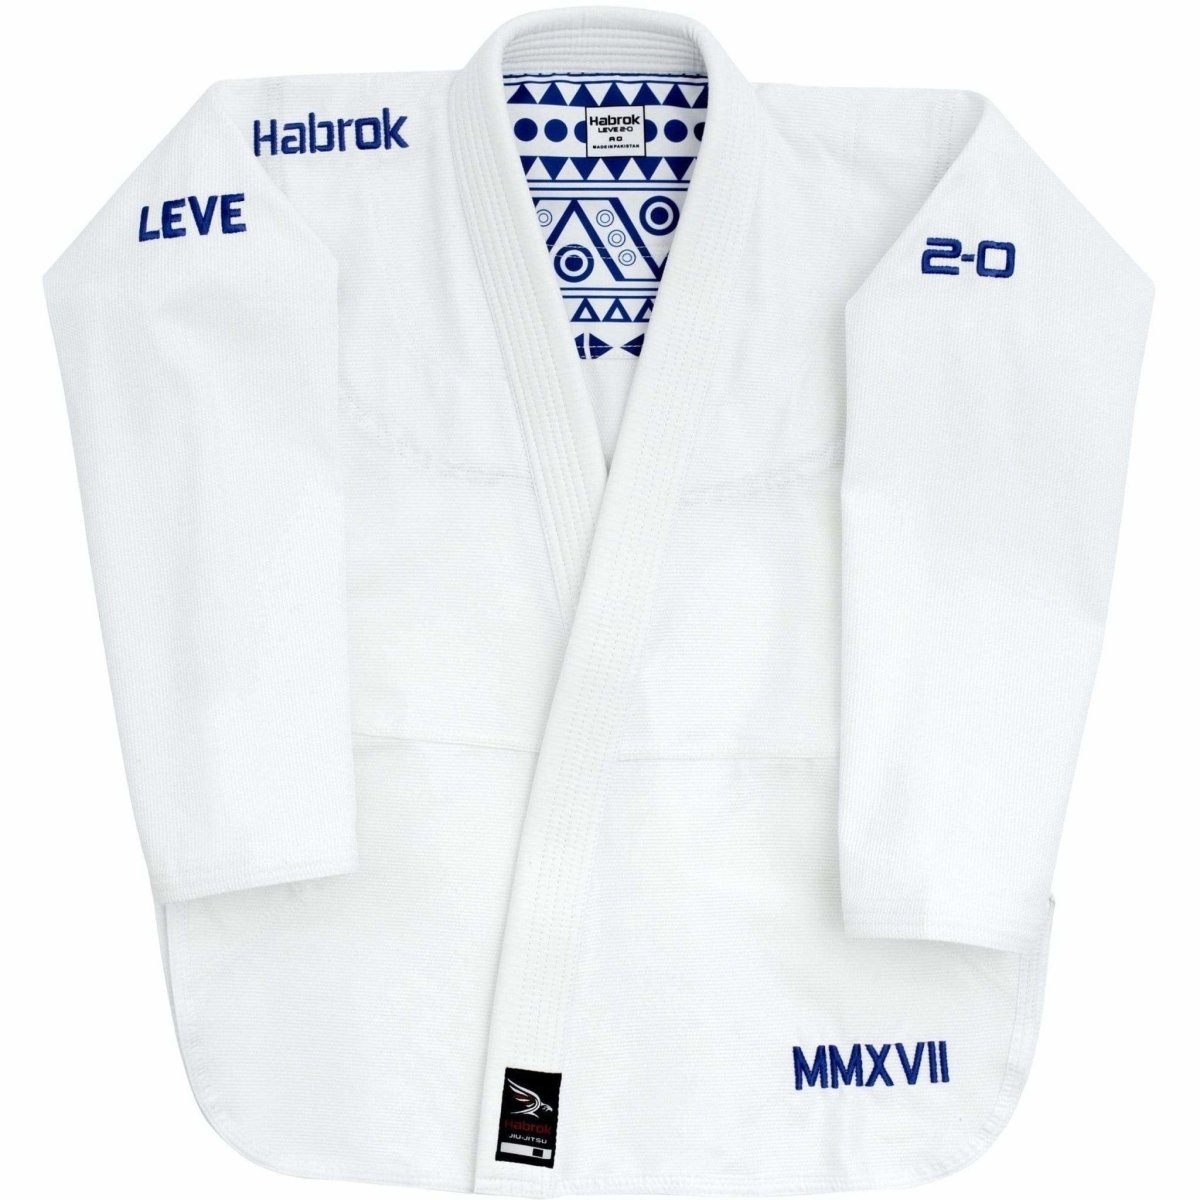 Habrok Jiu Jitsu Gi A00 / WHITE Leve 2.0 | BJJ GI Men | Premium Ultra Light Weight  | JIU JITSU